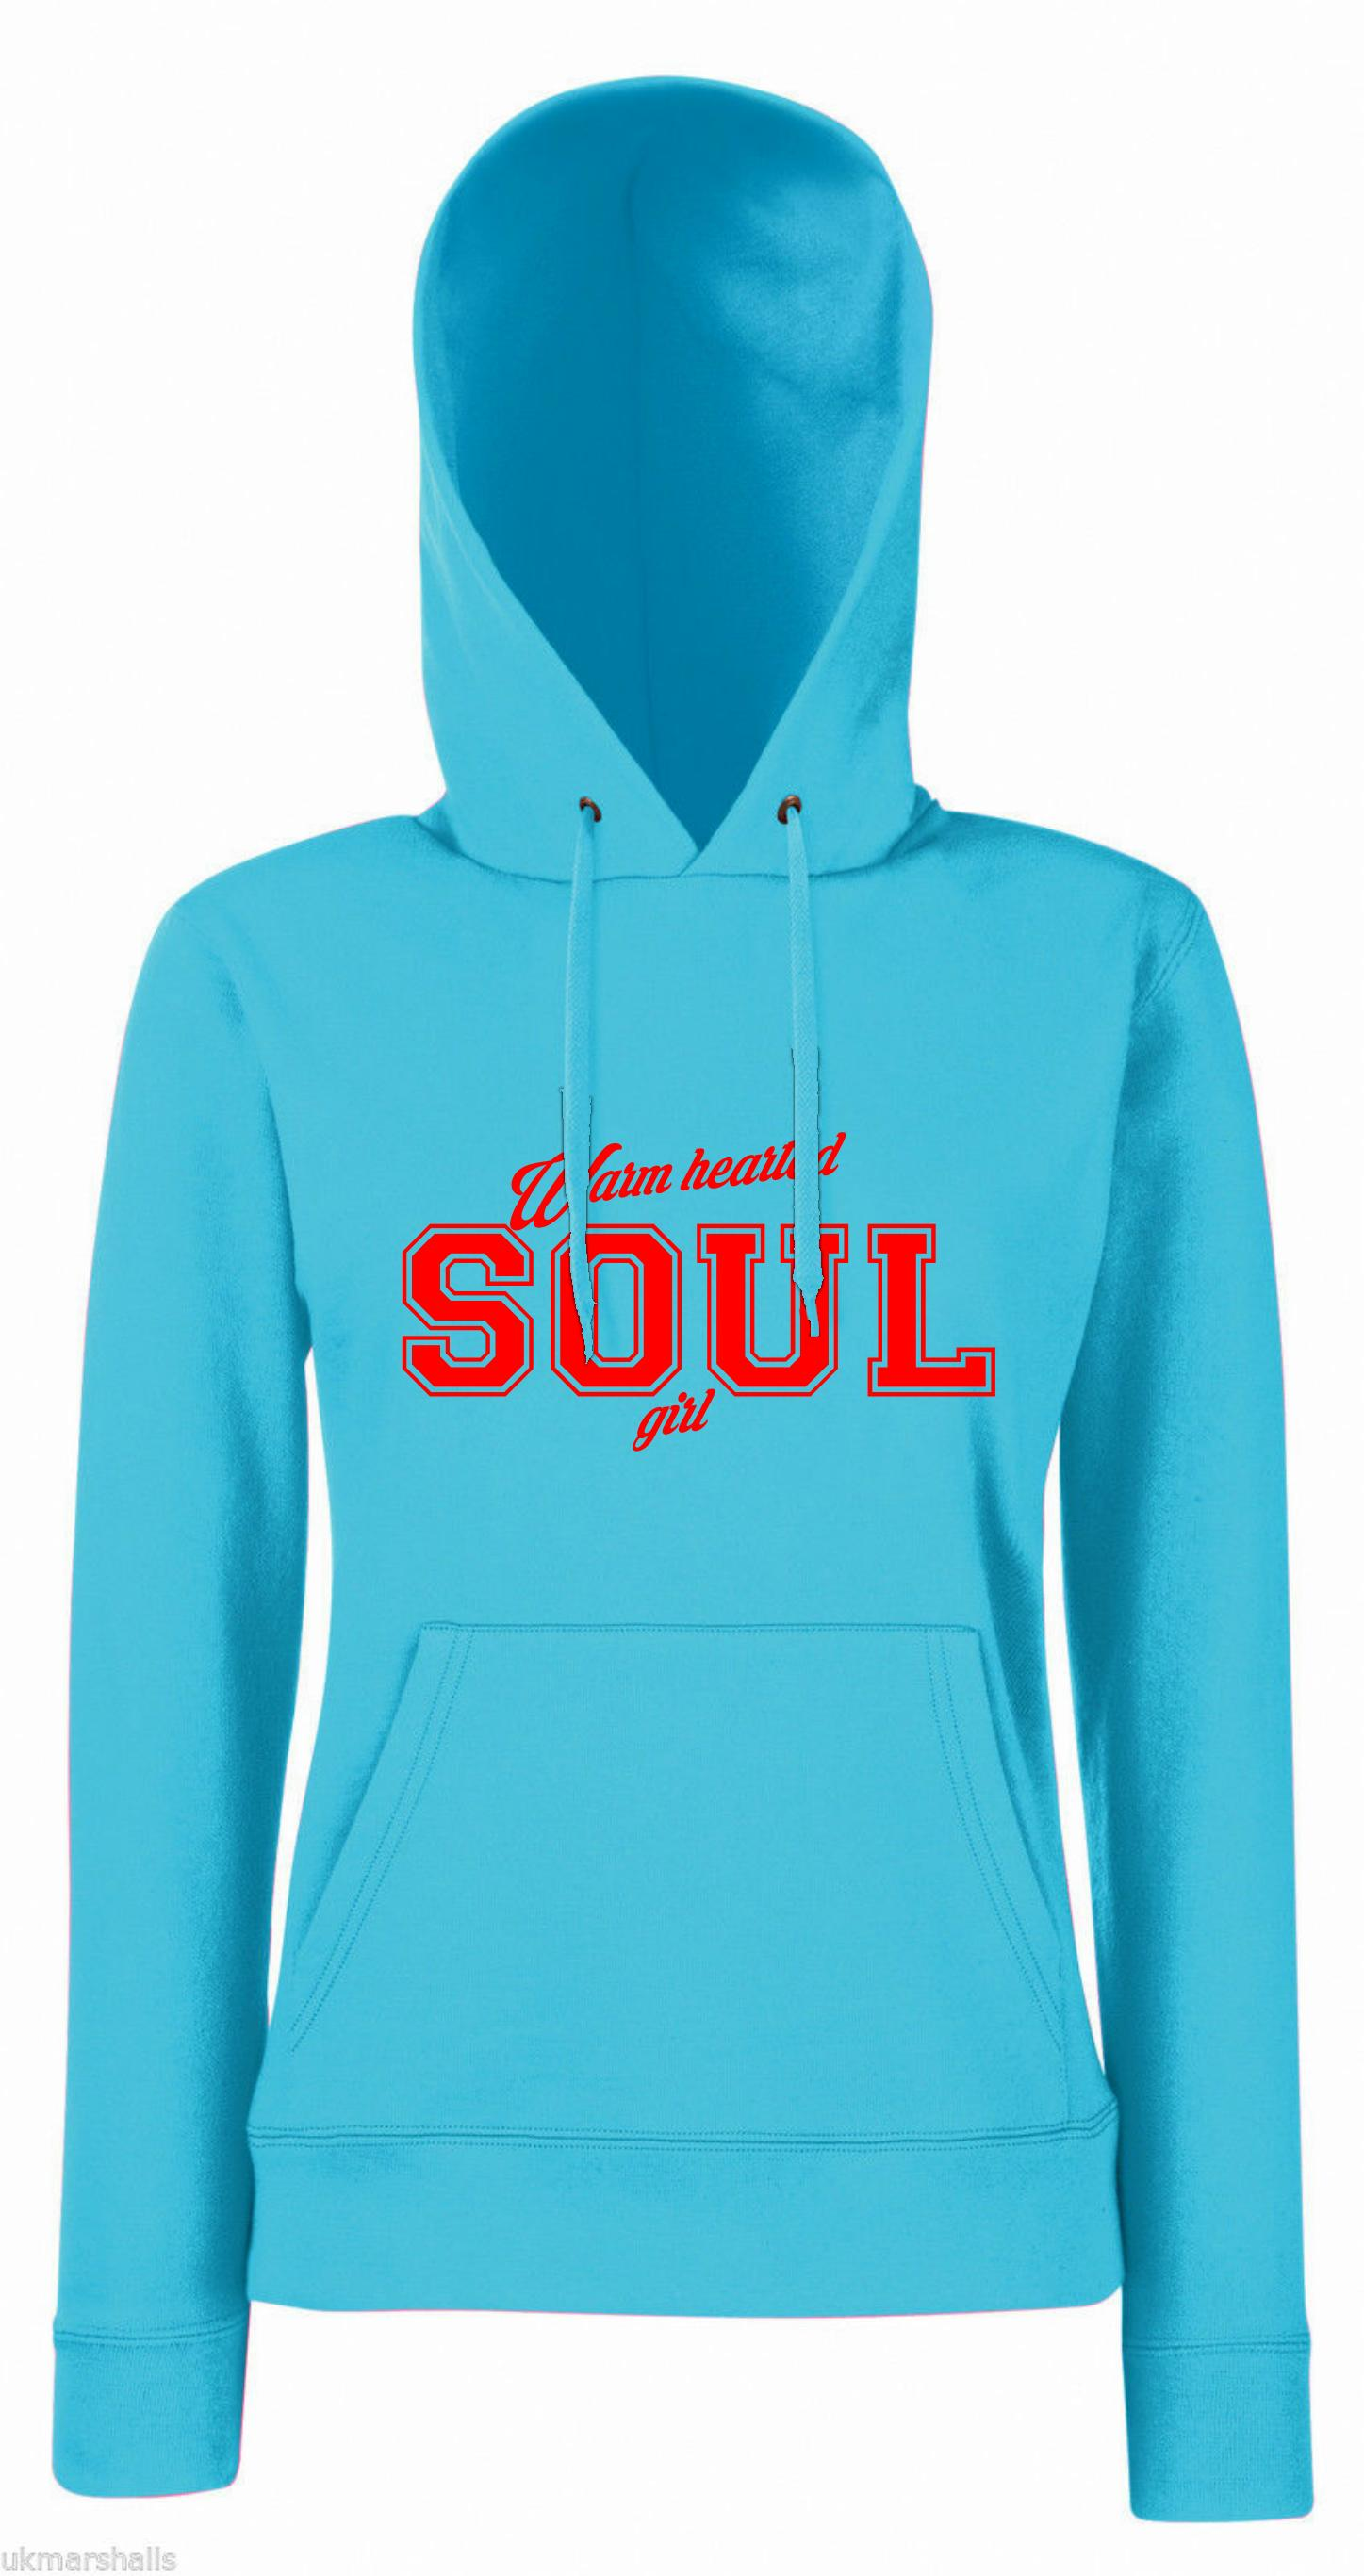 Ladies. Warm hearted Soul hoodie